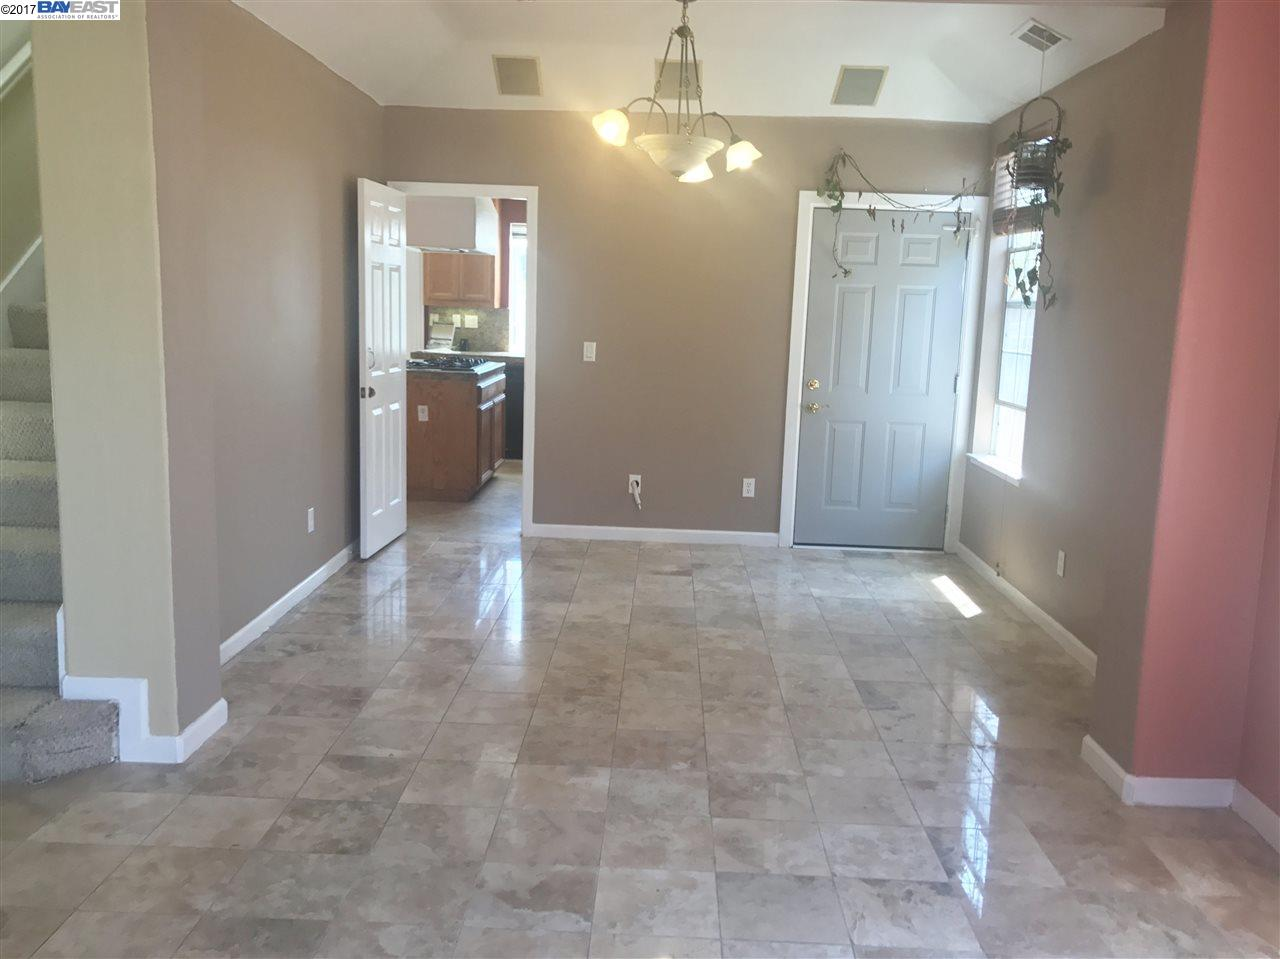 Additional photo for property listing at 4412 Canterbury Way  Union City, Kalifornien 94587 Vereinigte Staaten